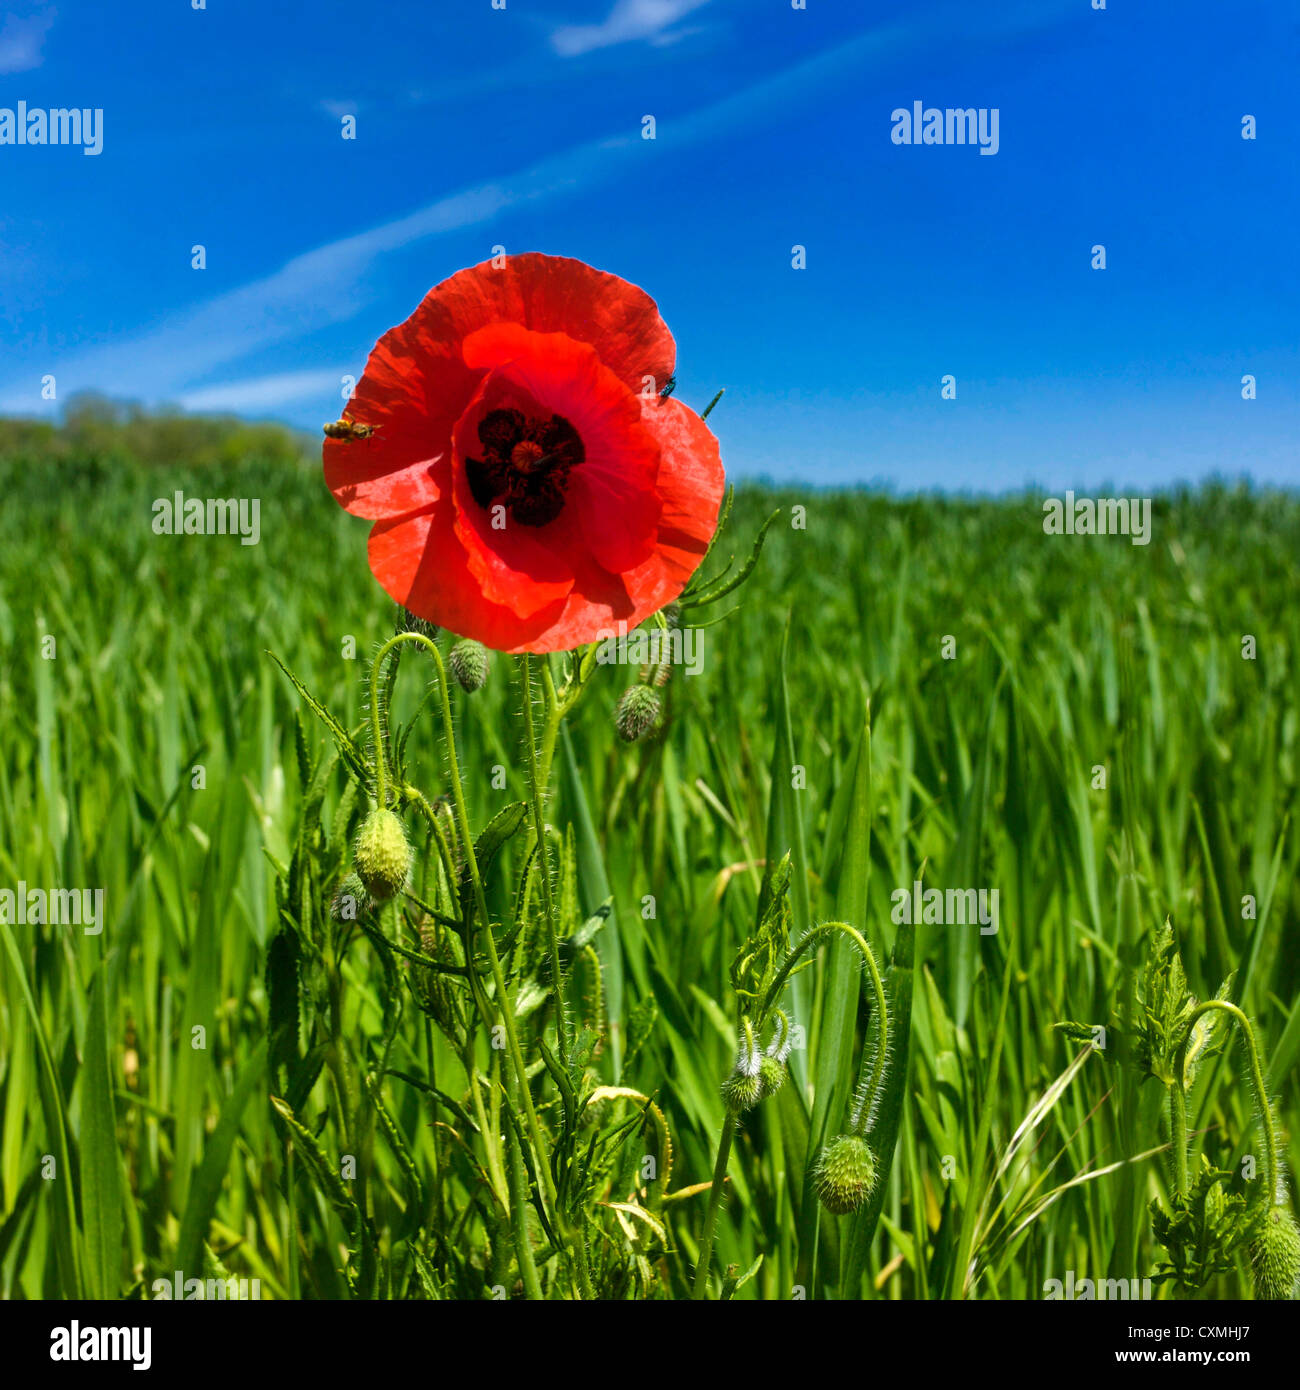 Single Poppy flower - Stock Image